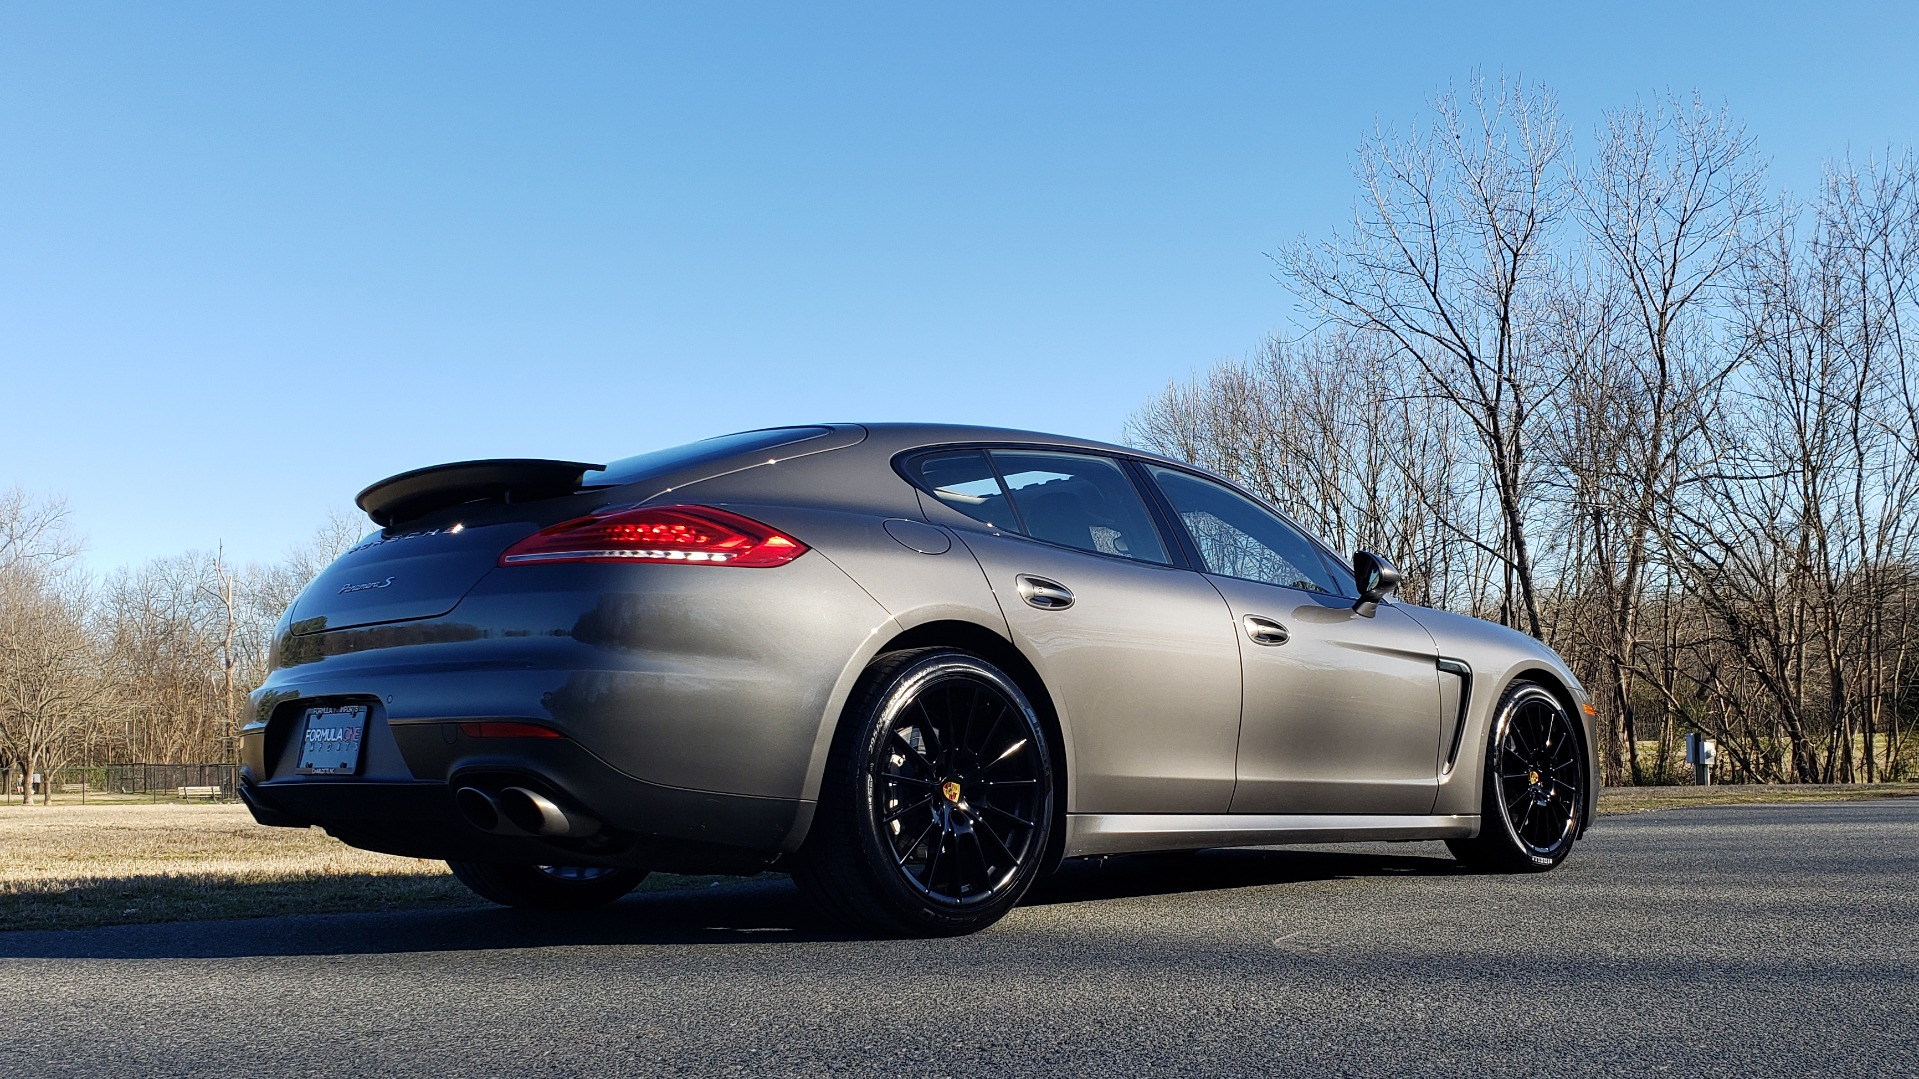 Used 2016 Porsche PANAMERA S / TURBO V6 / PDK / NAV / BOSE / SNRF / LDW / REARVIEW for sale Sold at Formula Imports in Charlotte NC 28227 36